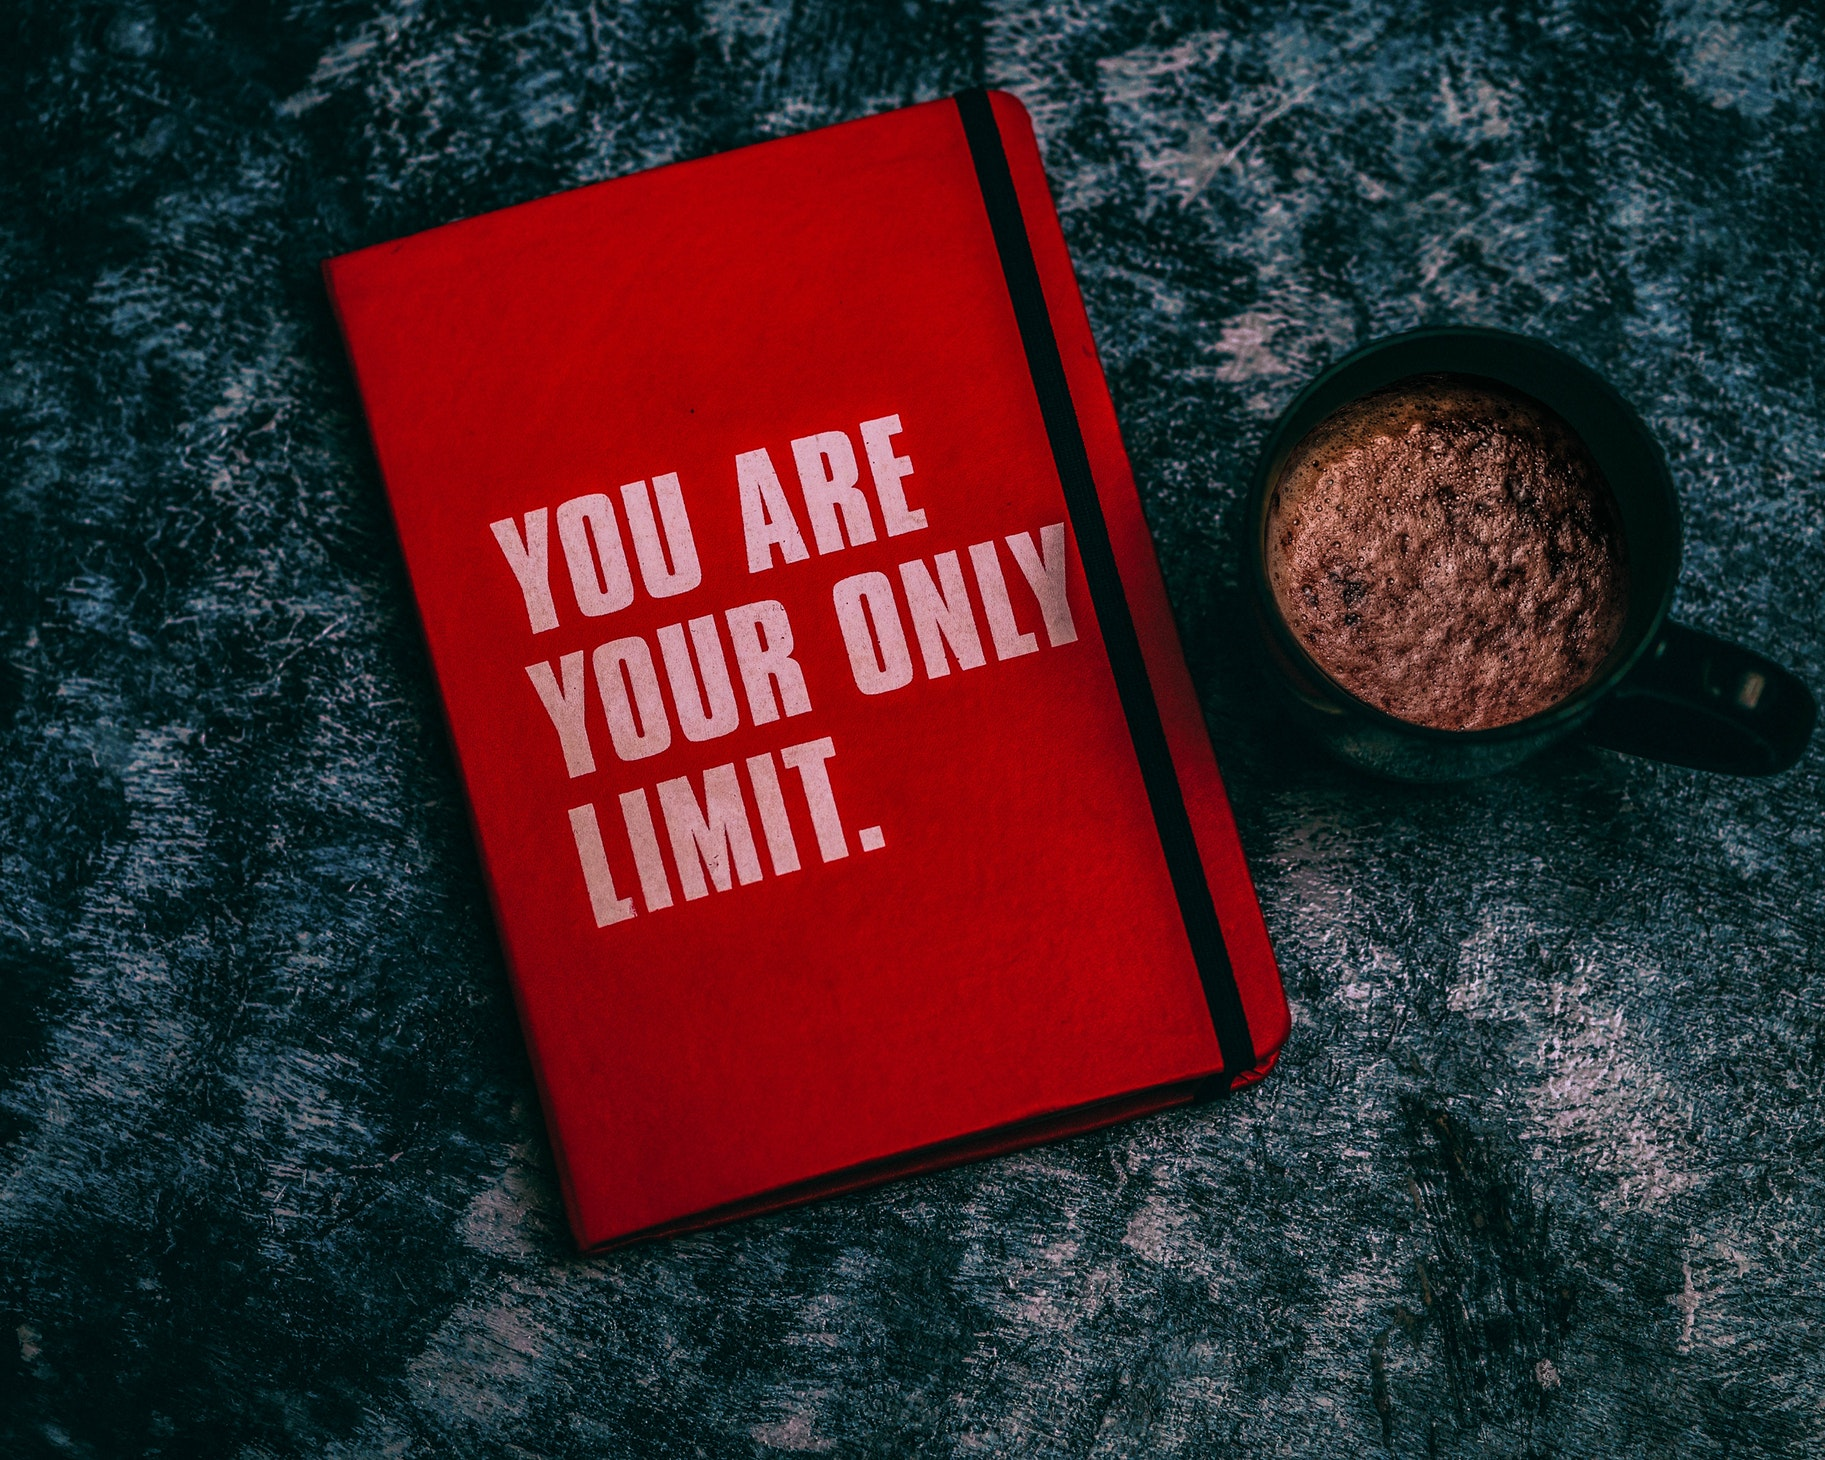 You are YOur oNly limit.jpg